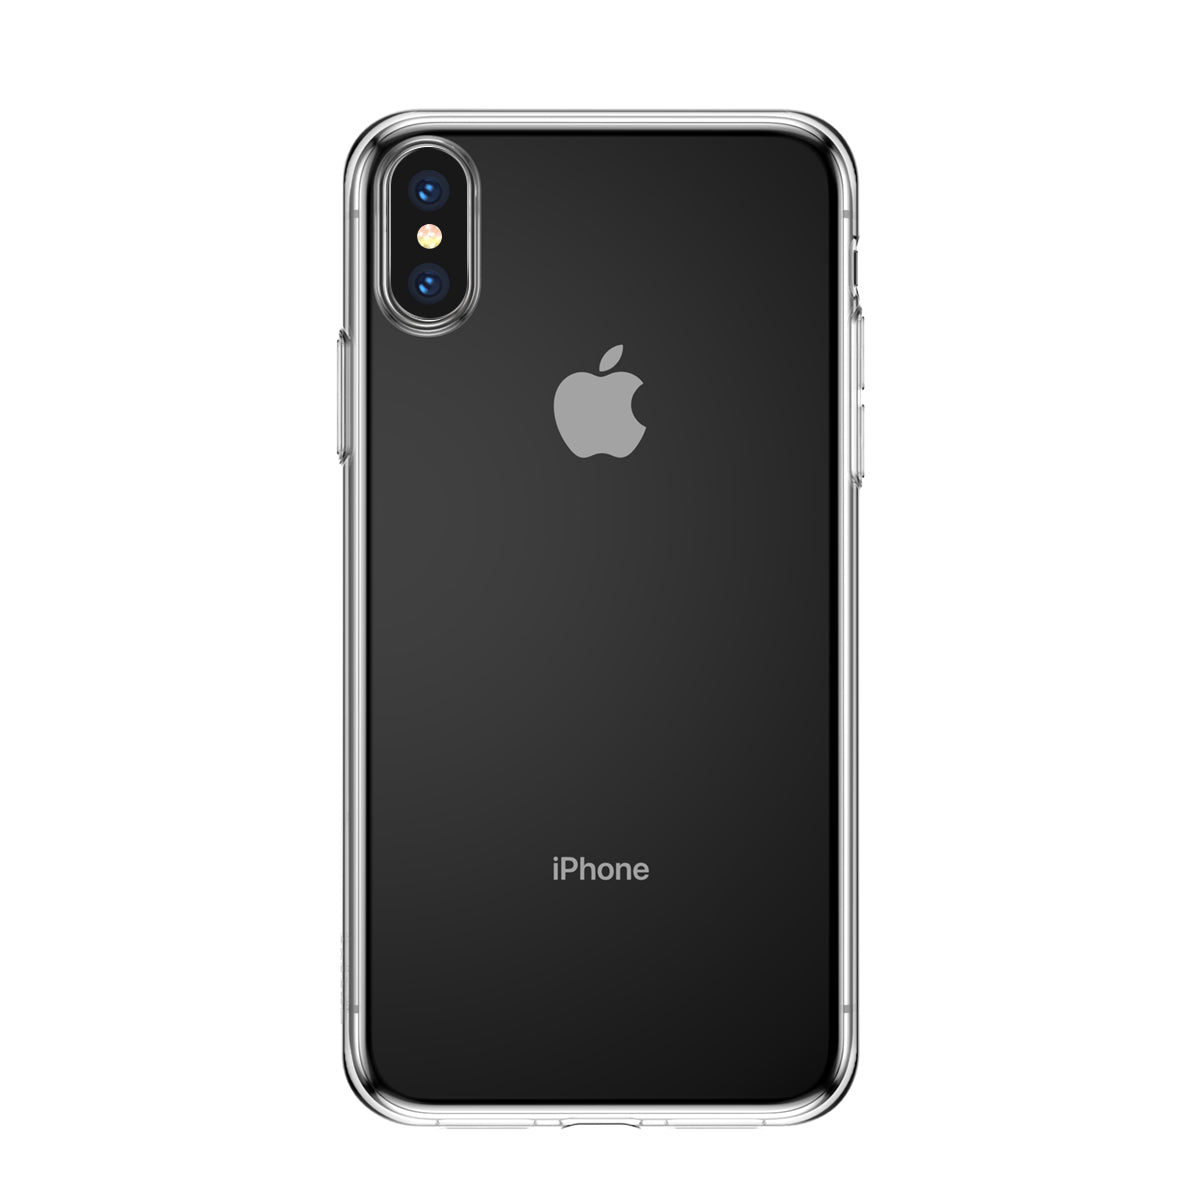 iPhone-XS-Baseus-Simple-Series-Transparent-Rear_S07W08YR4VN3.jpg